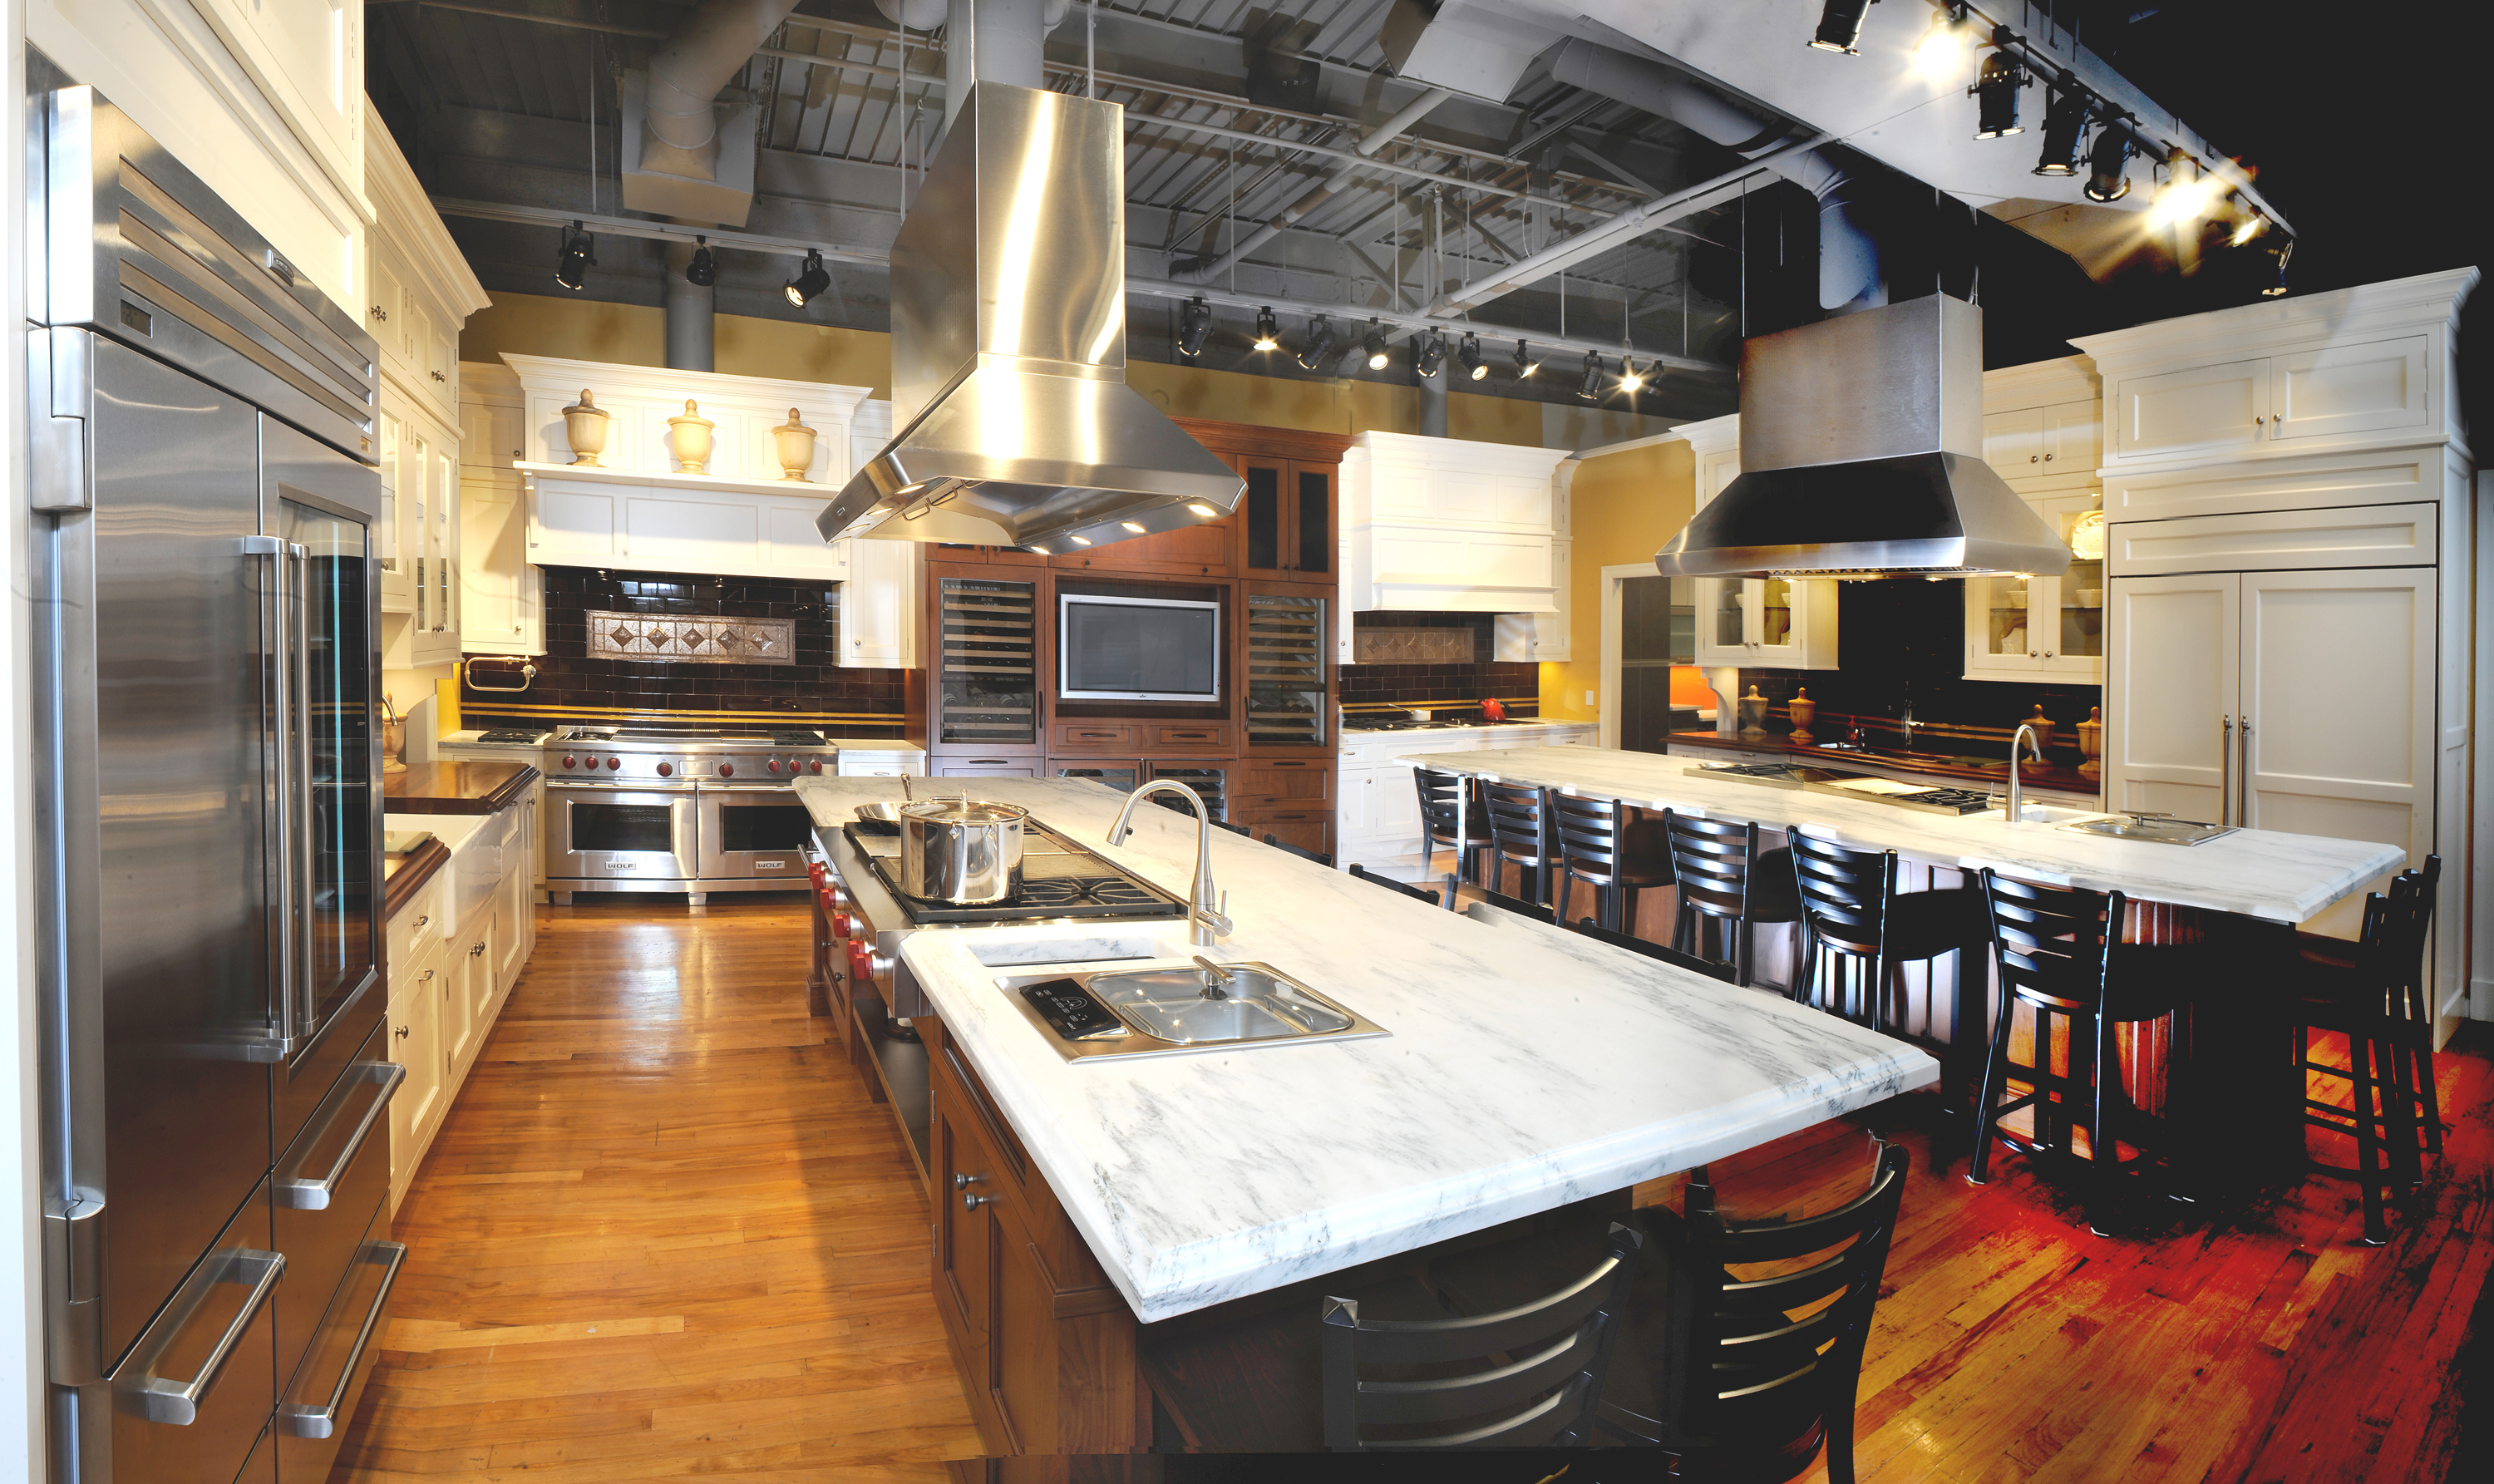 Sub Zero Wolf Appliance Showrooms Host Two Great 2010 Food Events